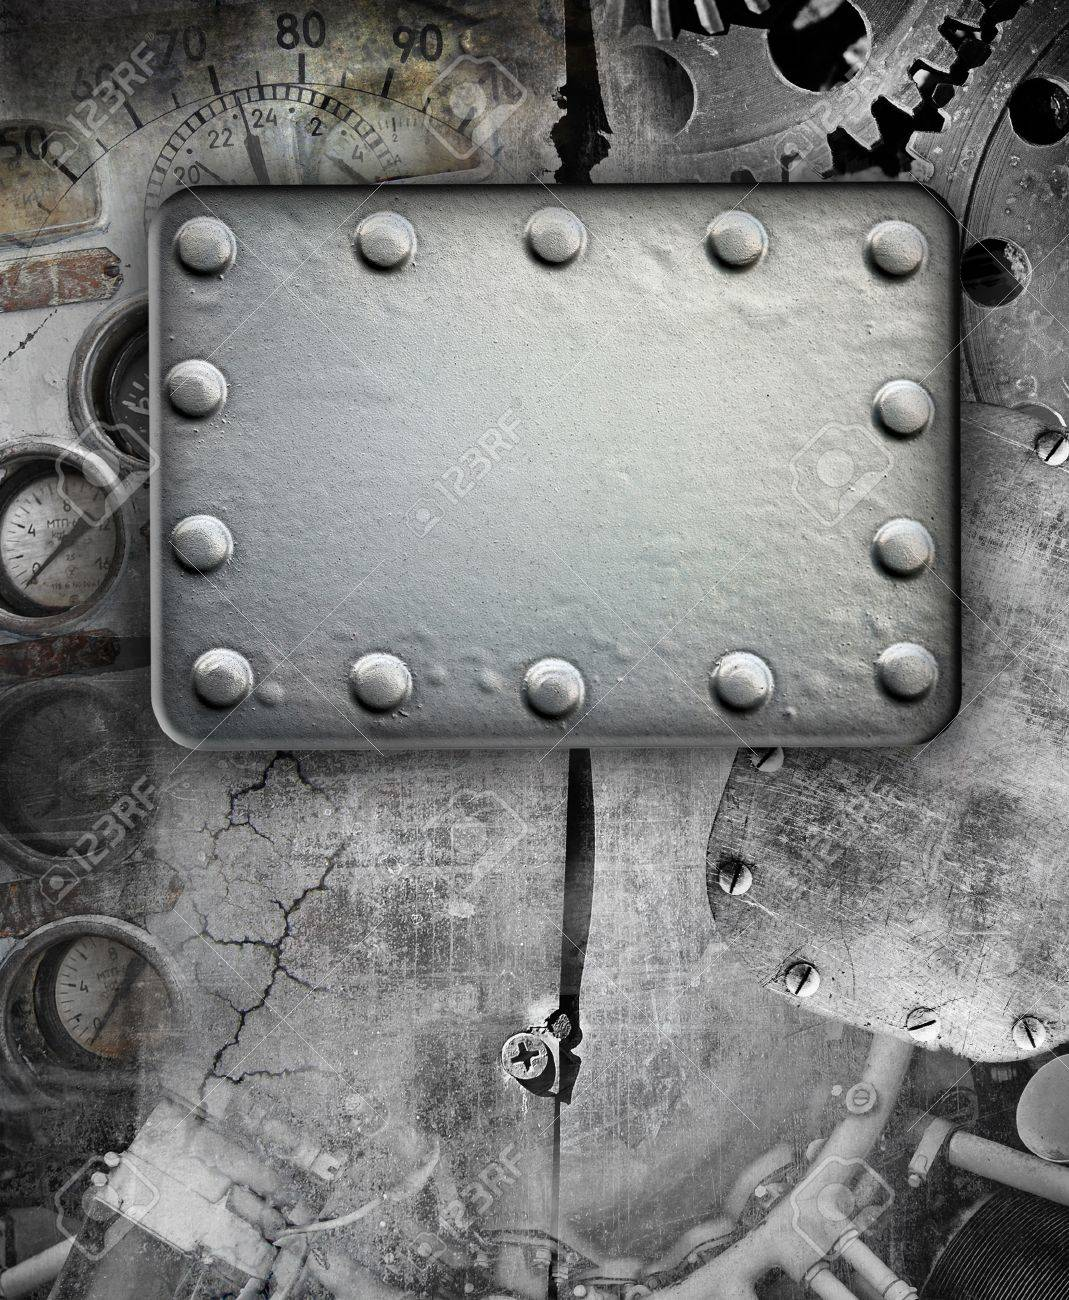 Industrial grunge background, metal plate with rivets Stock Photo - 11299336